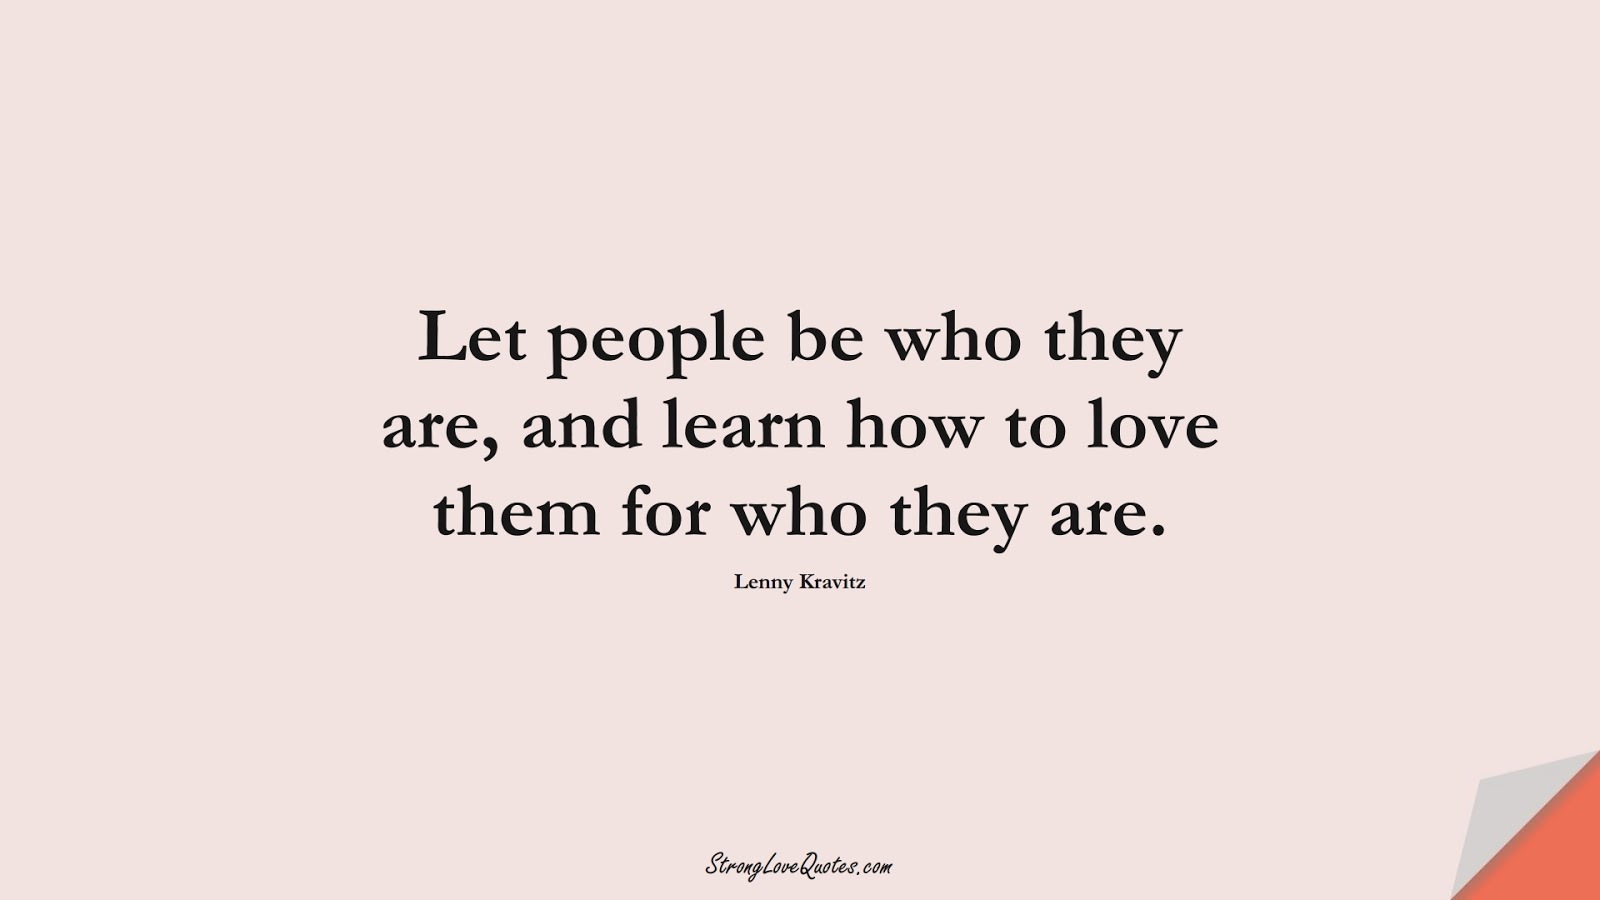 Let people be who they are, and learn how to love them for who they are. (Lenny Kravitz);  #LearningQuotes